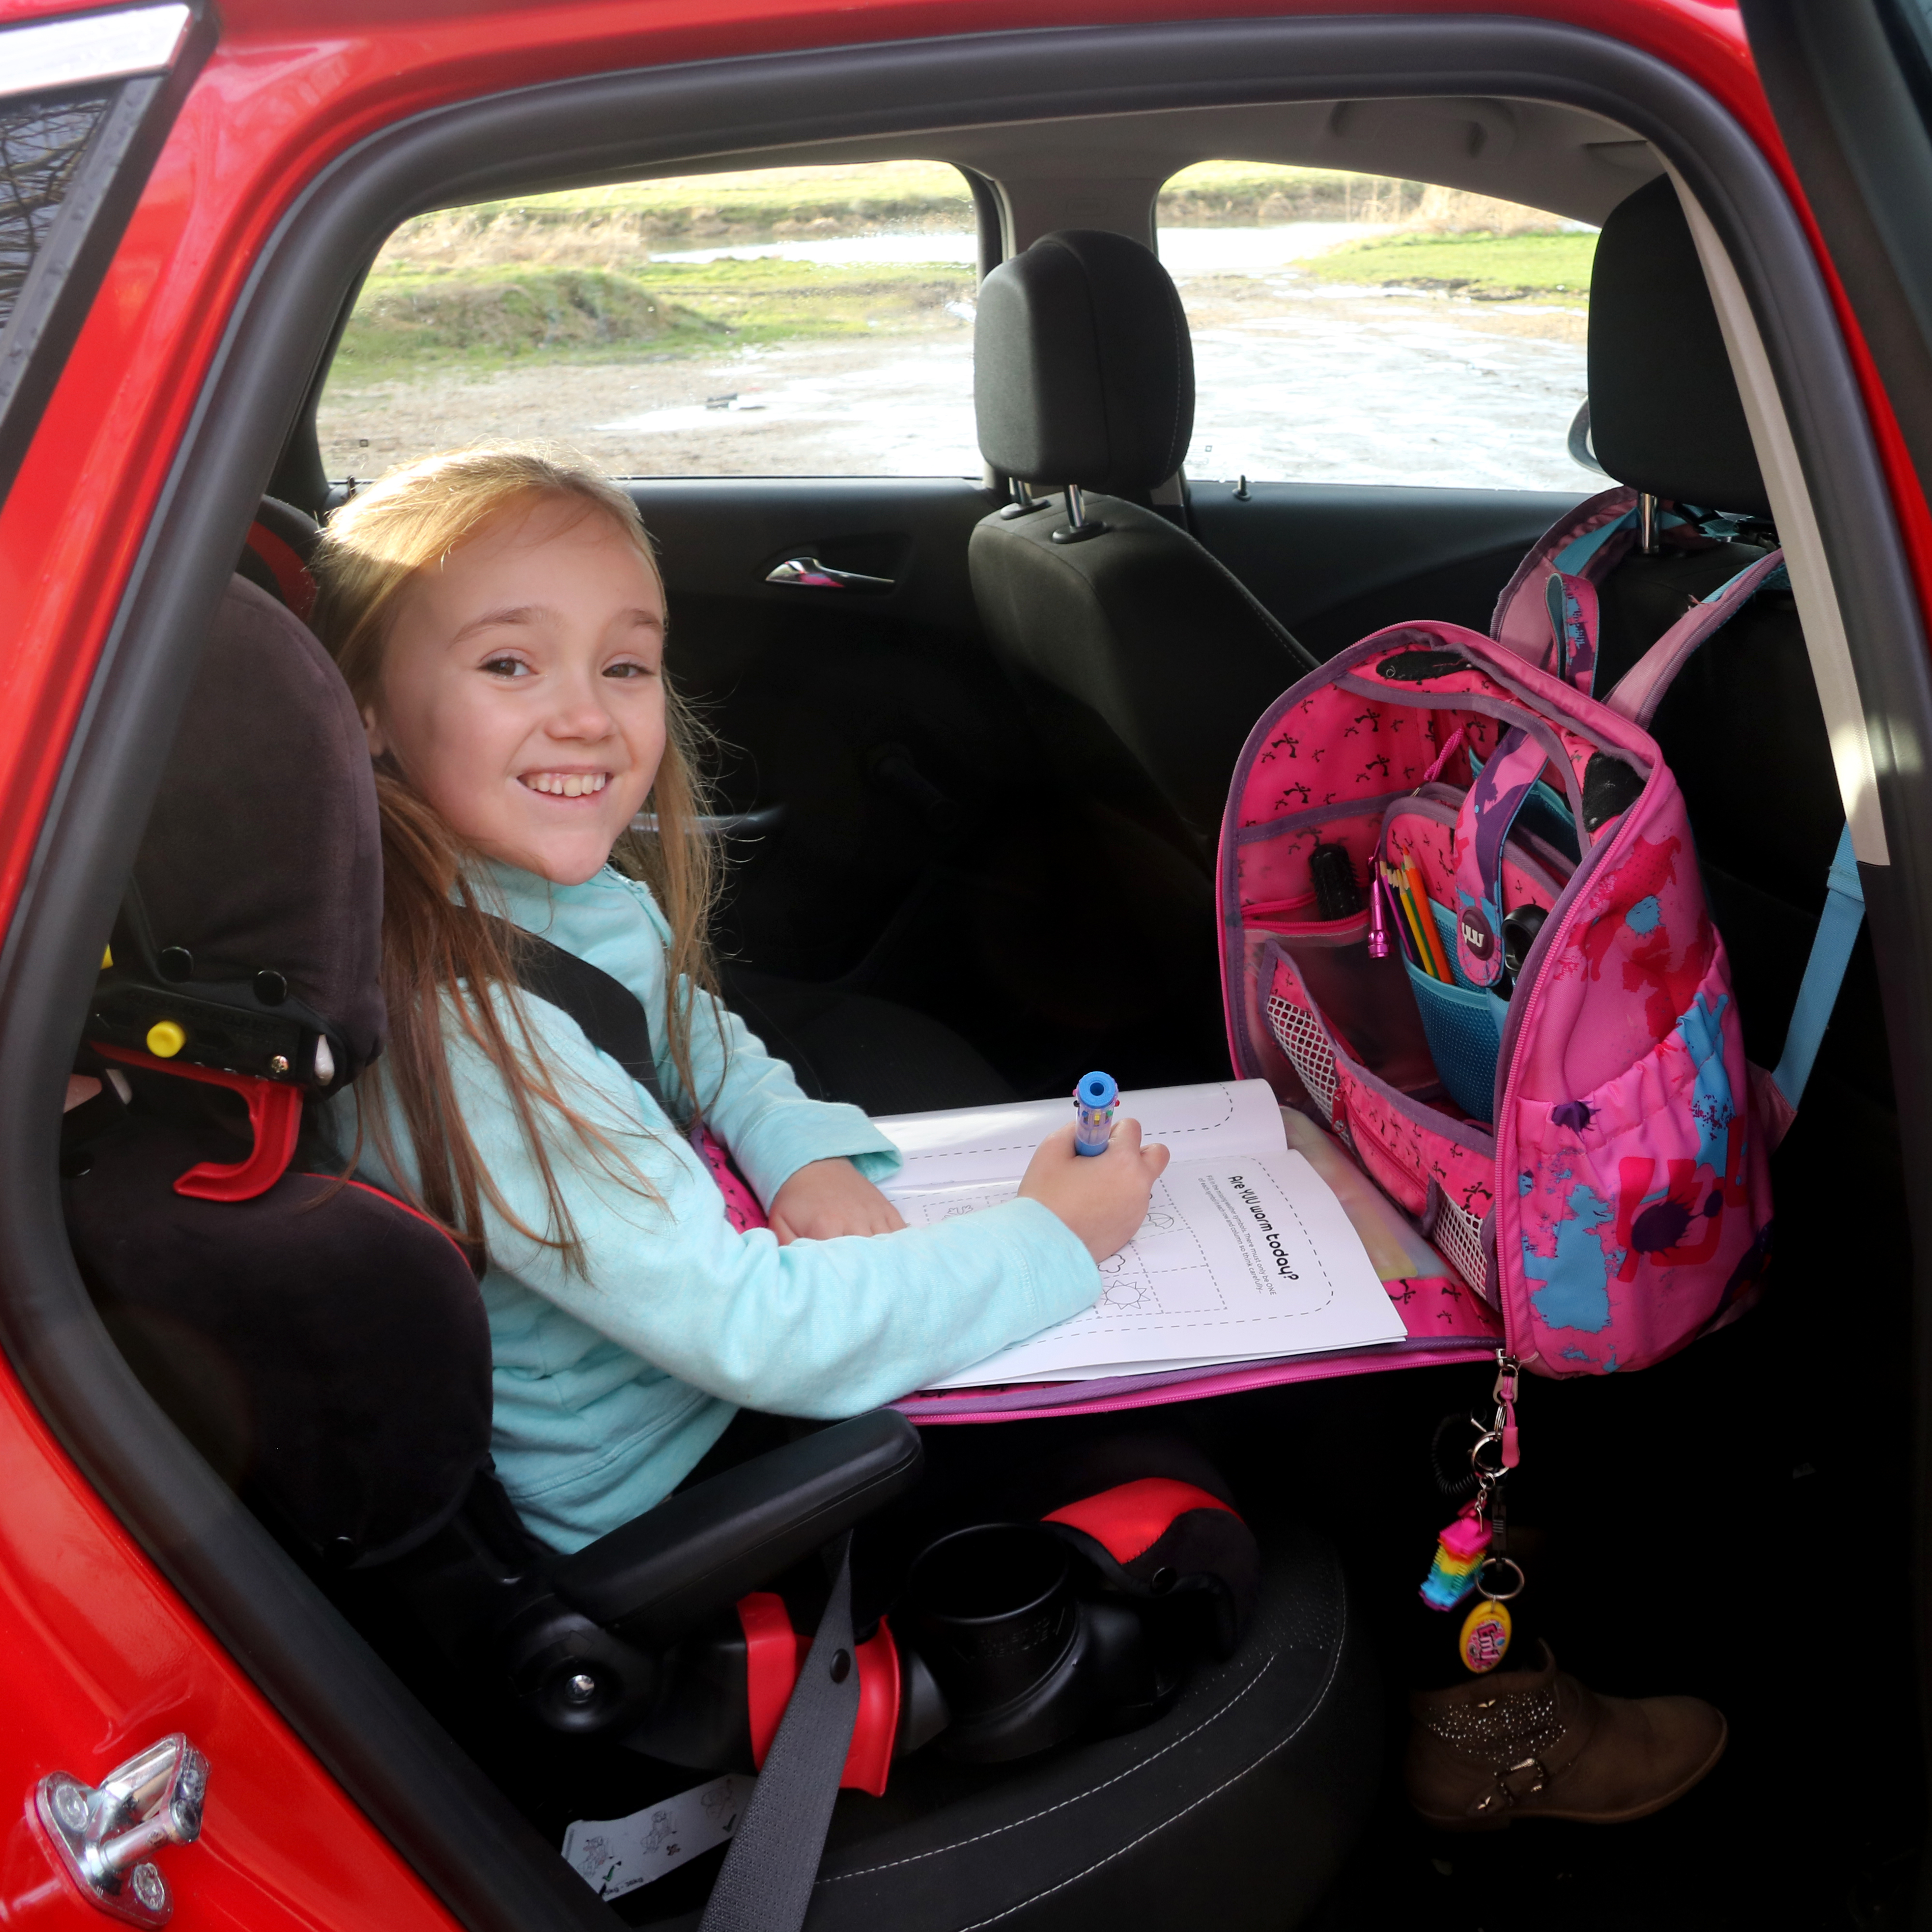 A child in a car with her YUUbag